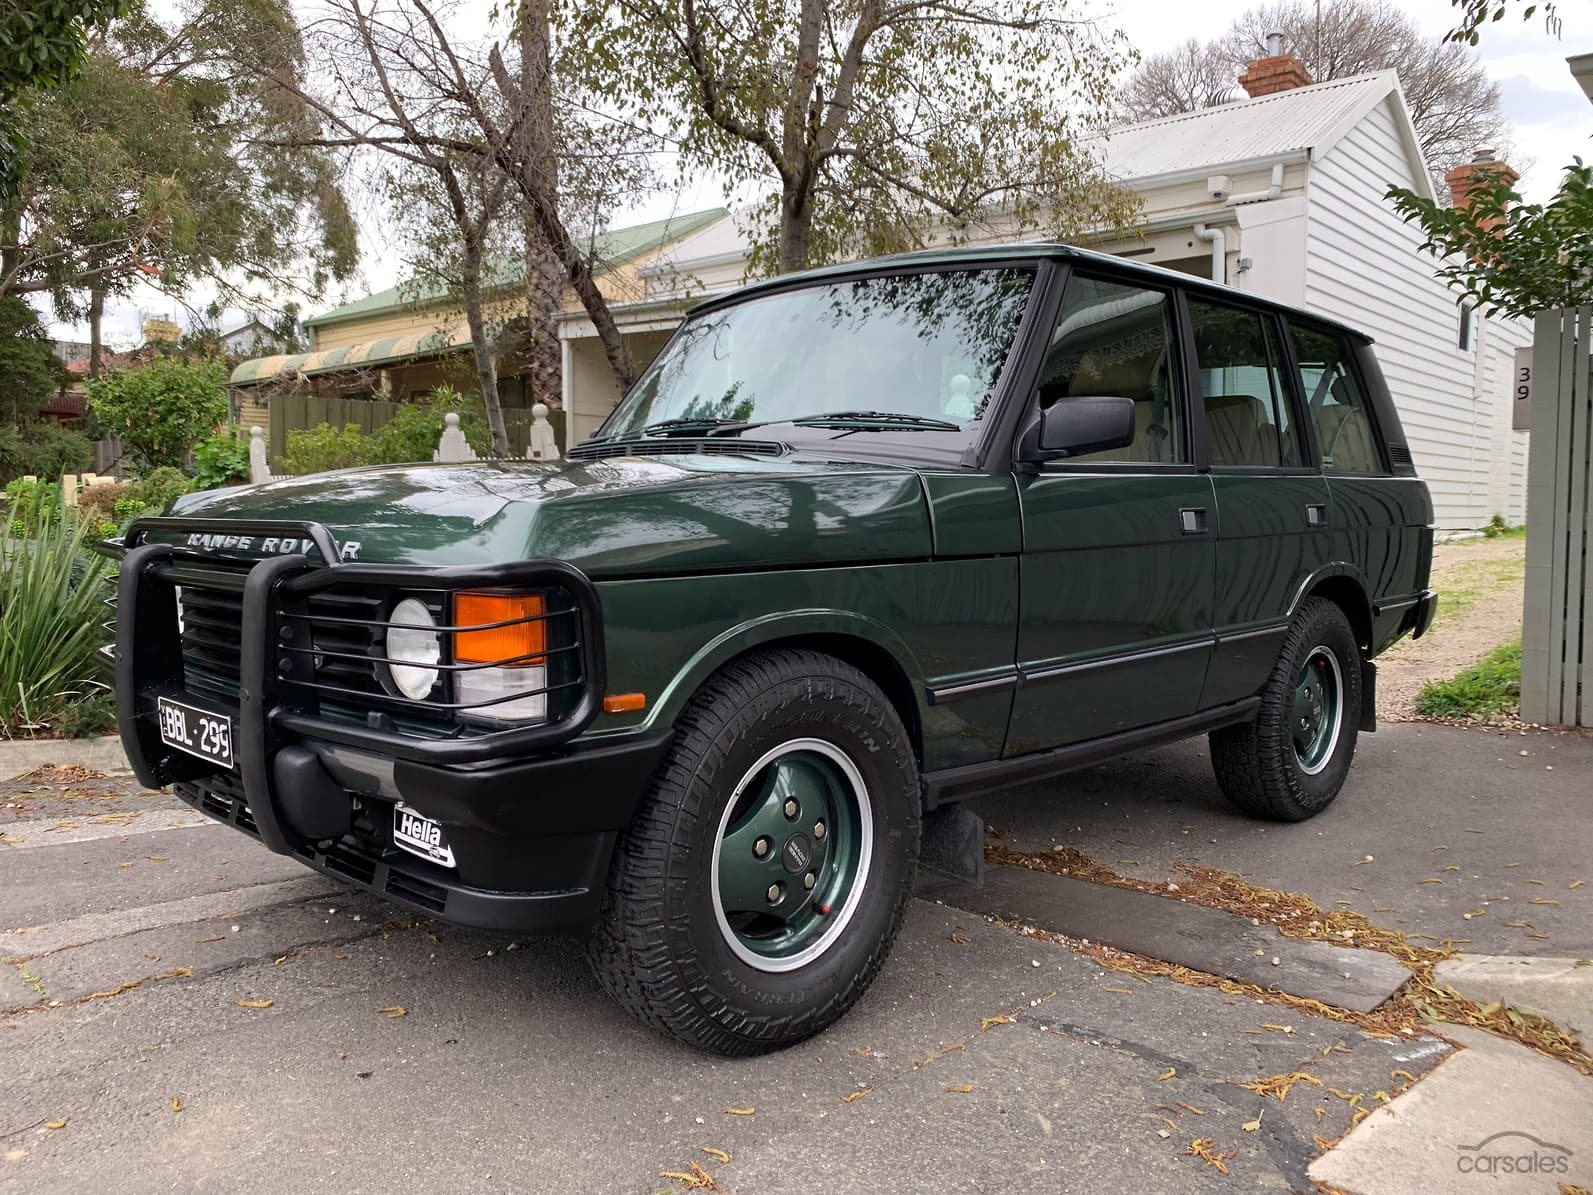 1994 Land Rover Range Rover Vogue Se Auto 4wd Your New Family Car Car Rave Cool Cars For Sale Jdm Muscle Classic Retro